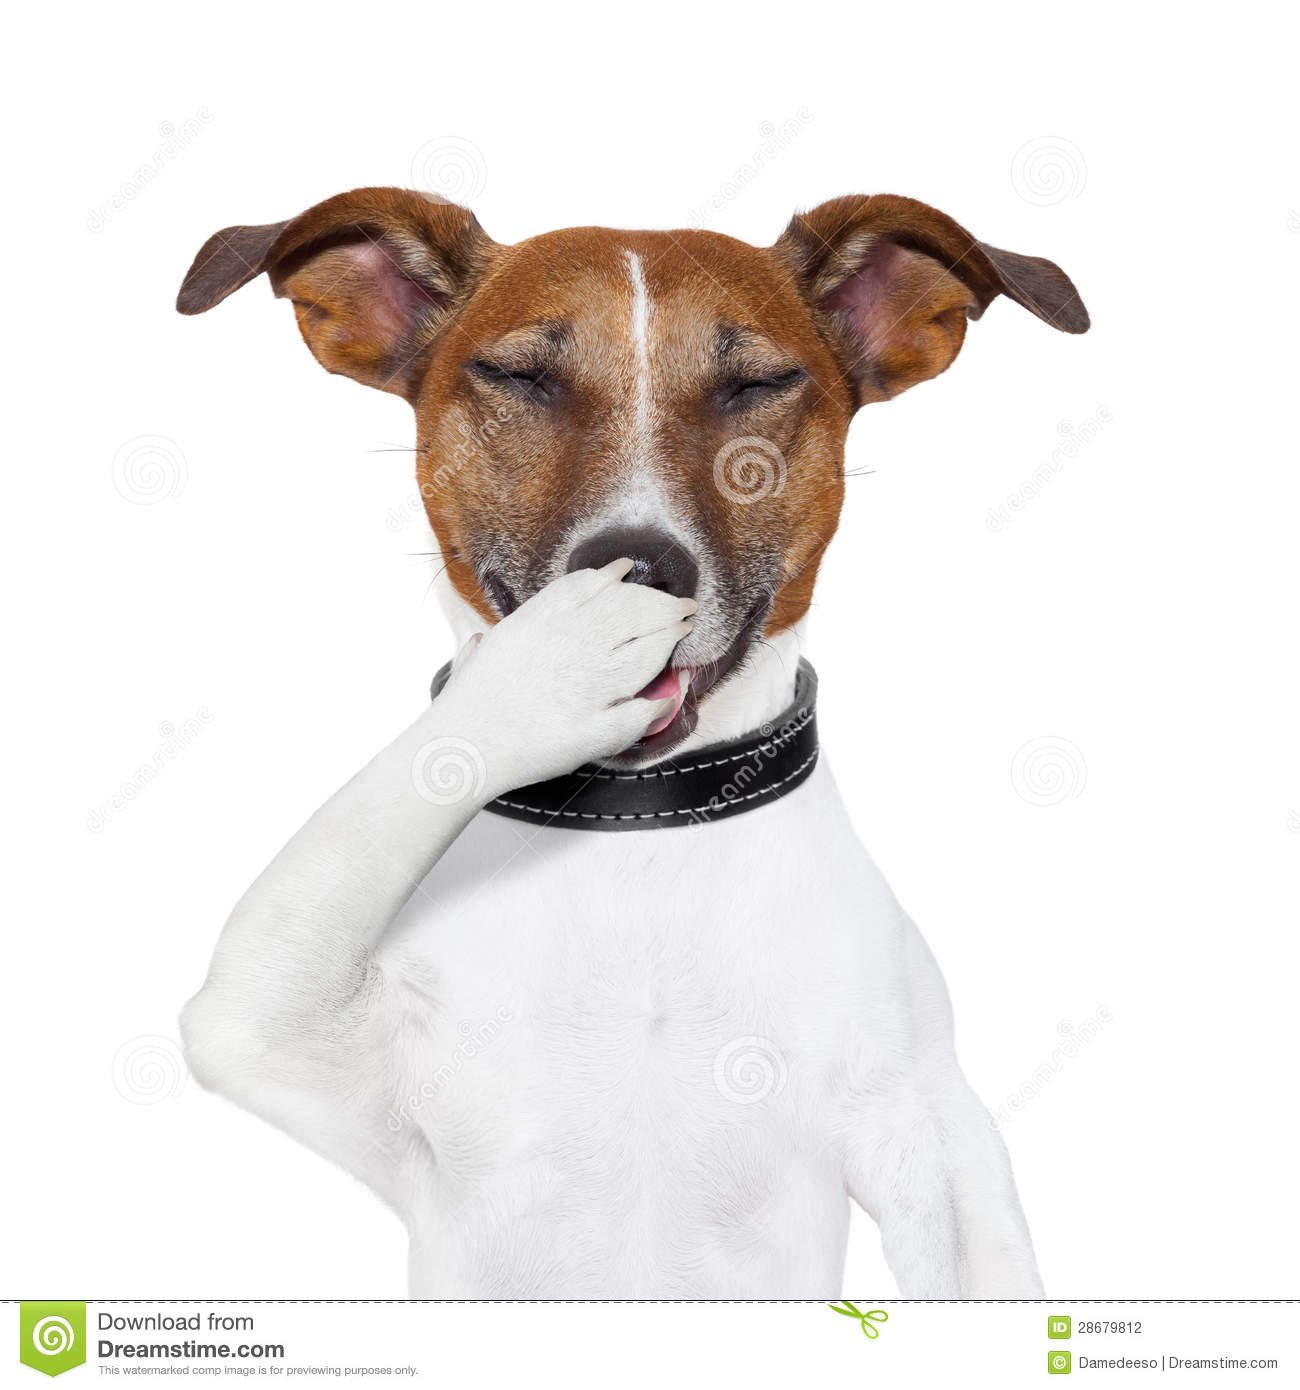 Laughing dog clipart jpg transparent library Dog Laughing At A Joke Stock Photography - Image: 28679812 jpg transparent library